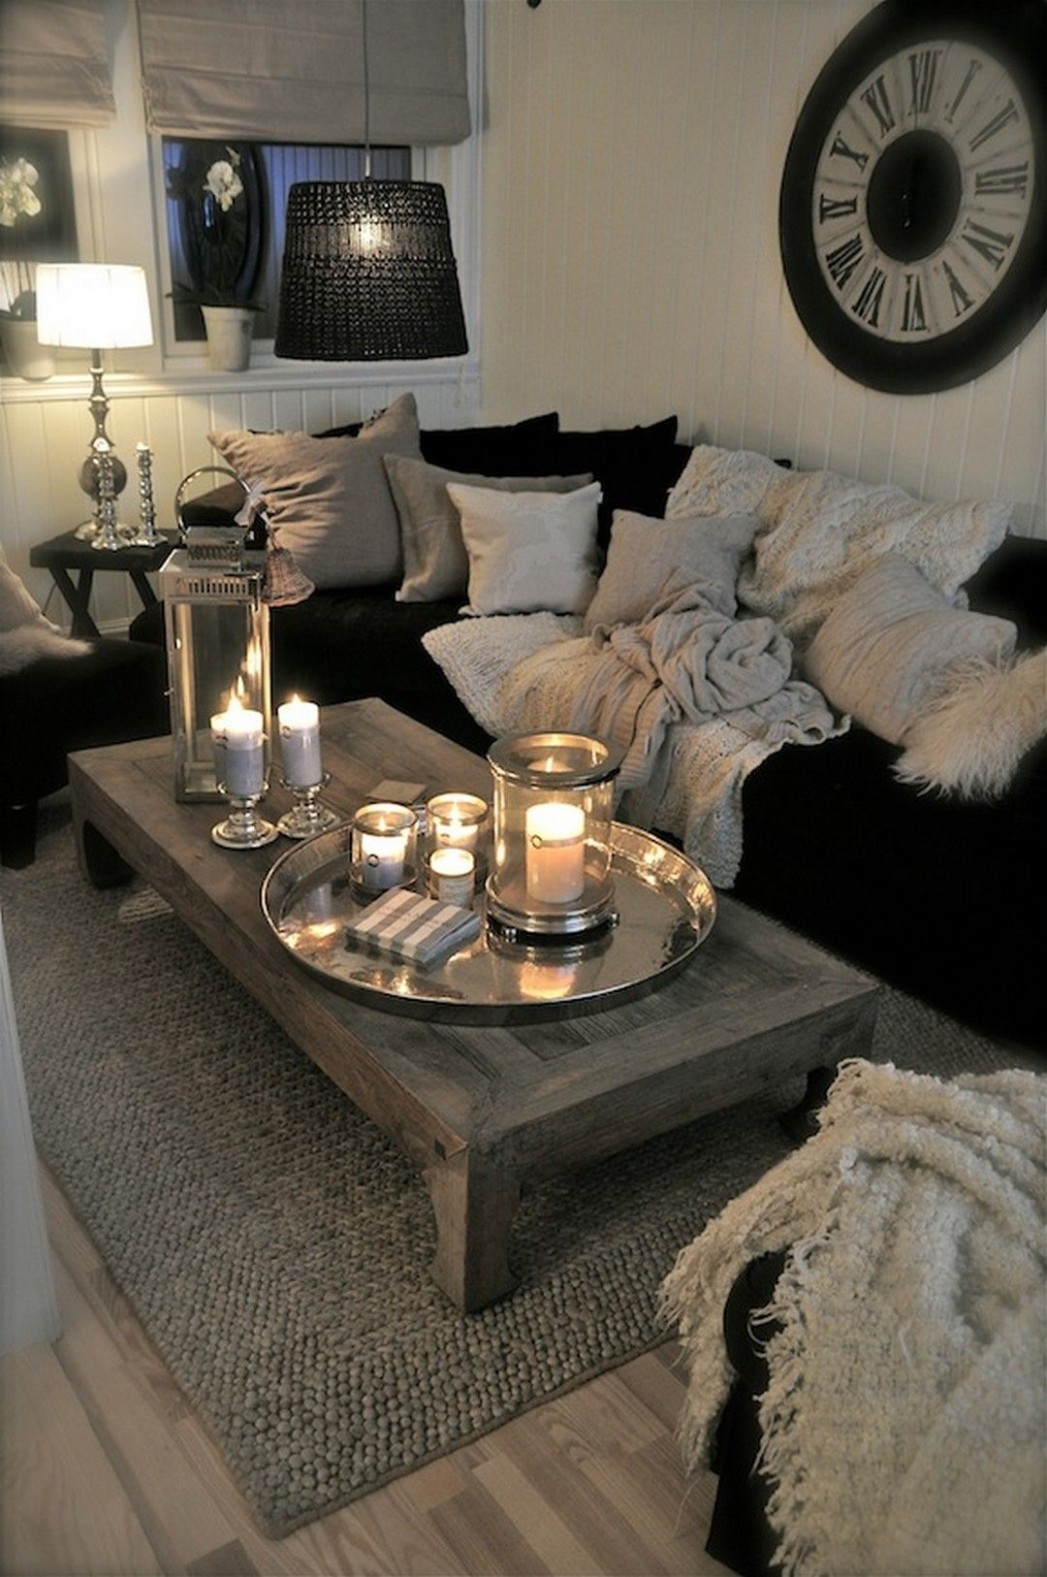 10 Easy DIY First Apartement Decorating Ideas - Architecturehd  - New Apartment Decorating Ideas